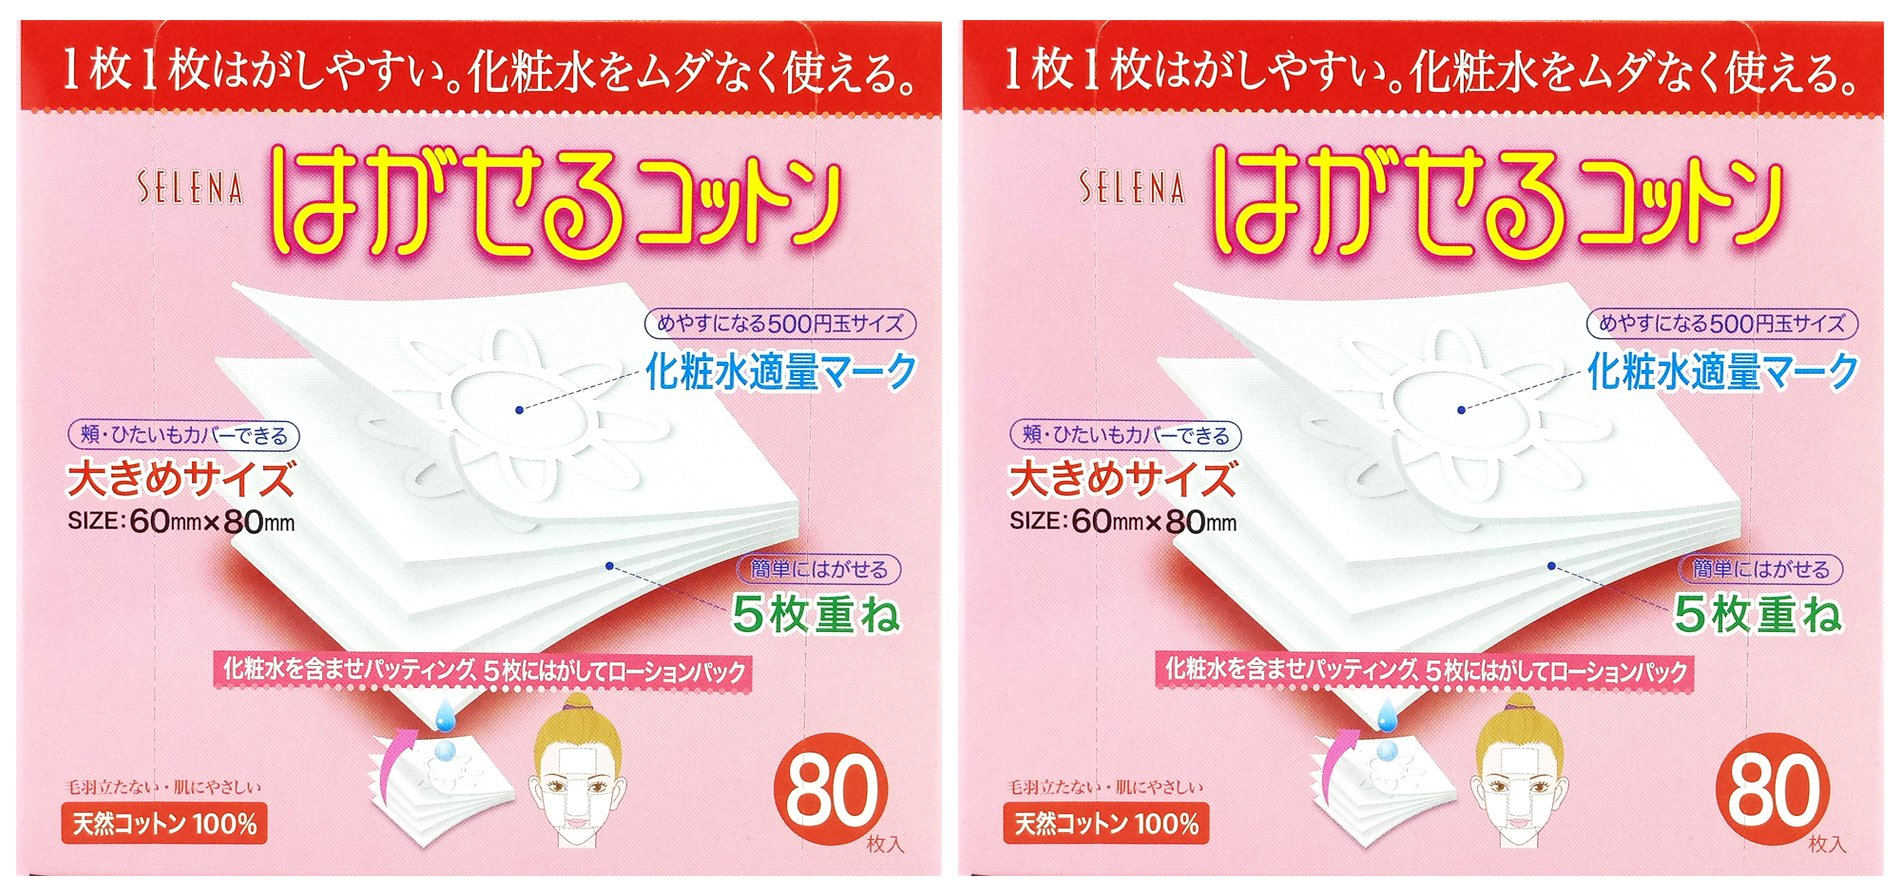 TWIN PACK SELENA Multi-Layer Cotton Puff, 80 Count (Pack of 2)